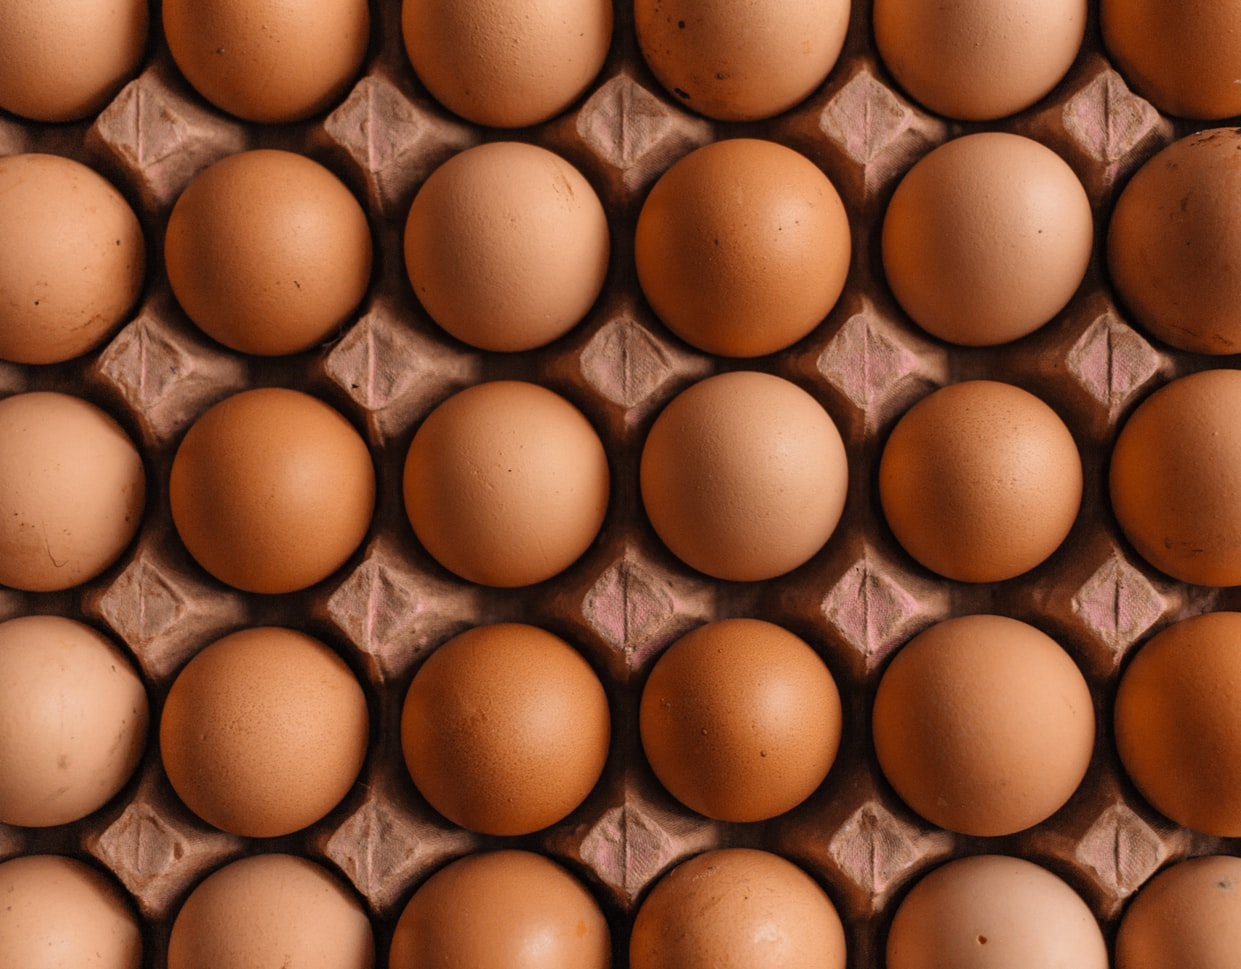 Egg & Poultry Stock Prices Have Diverged in the US. What's Next?